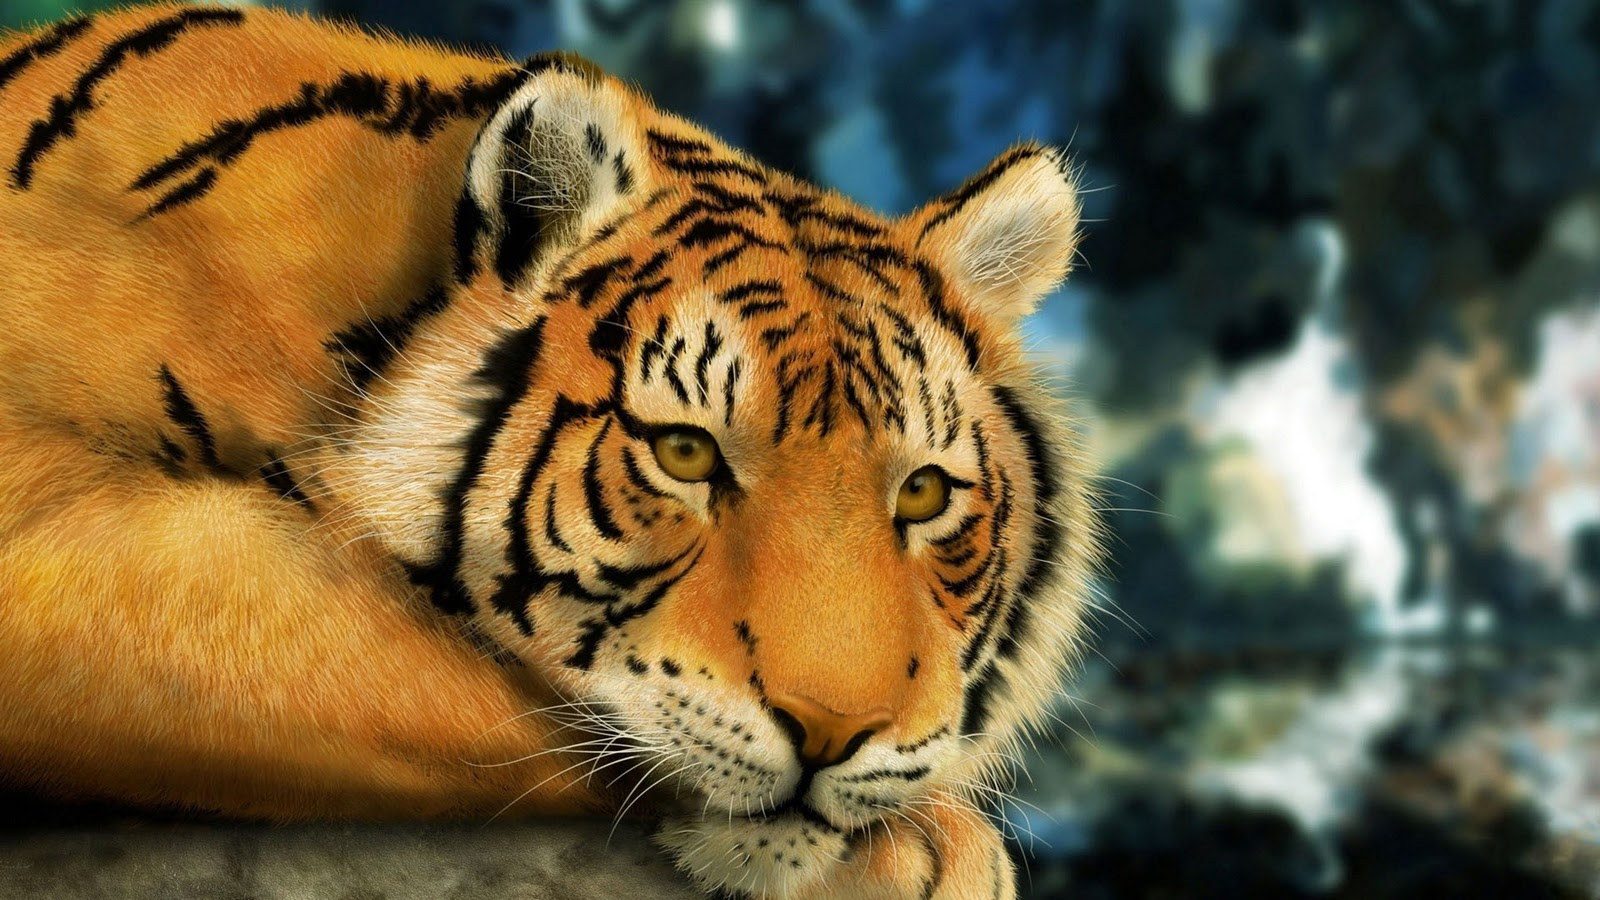 hd tiger wallpaper